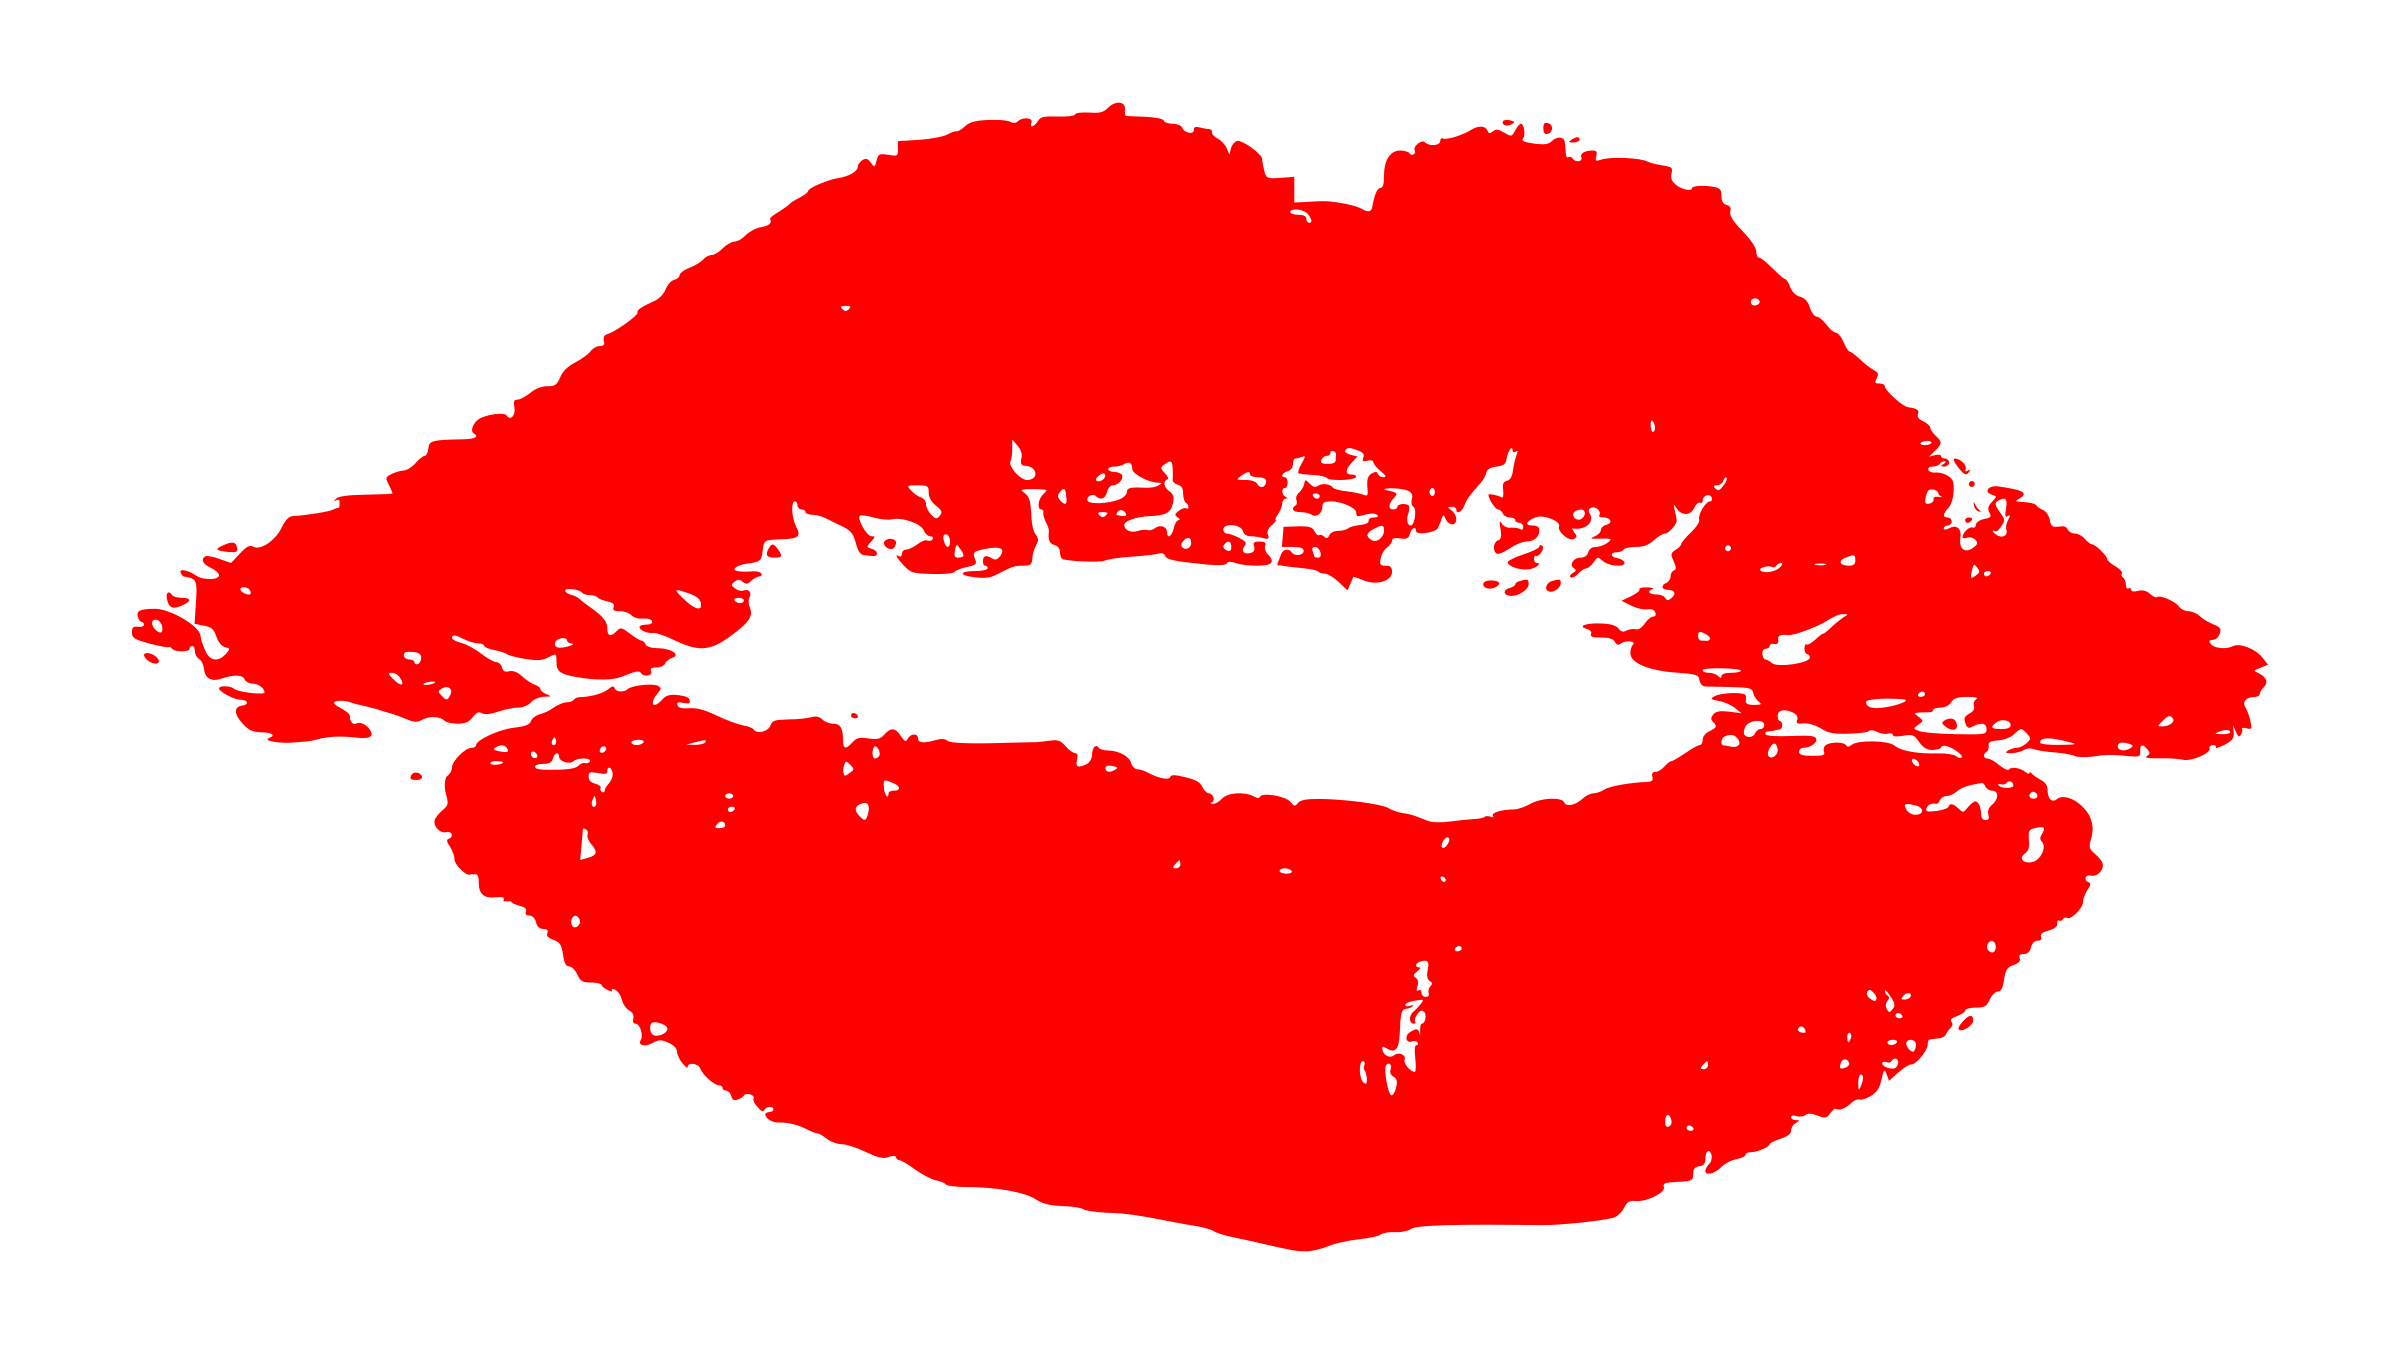 Red Lips by worker